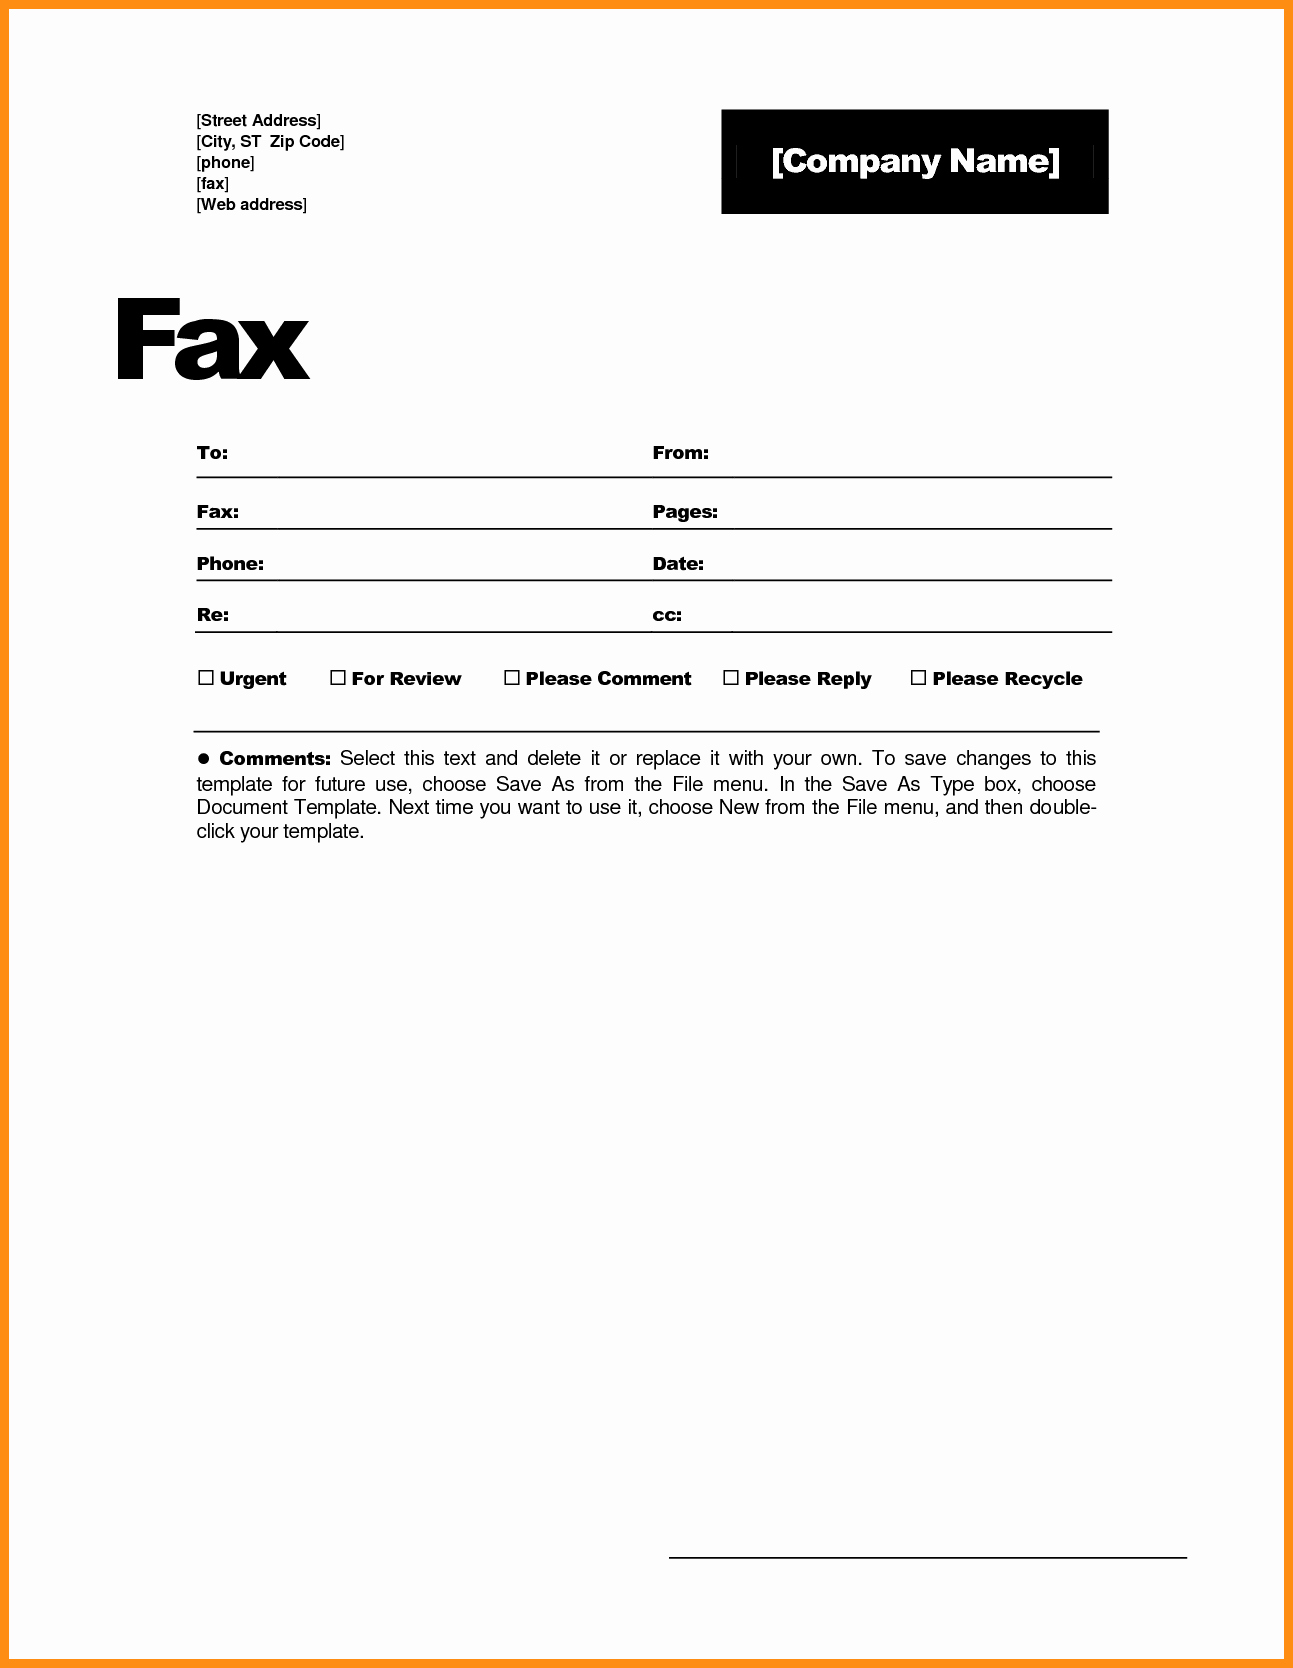 Sample Of Fax Cover Sheets New 6 Free Fax Cover Sheet Template Word